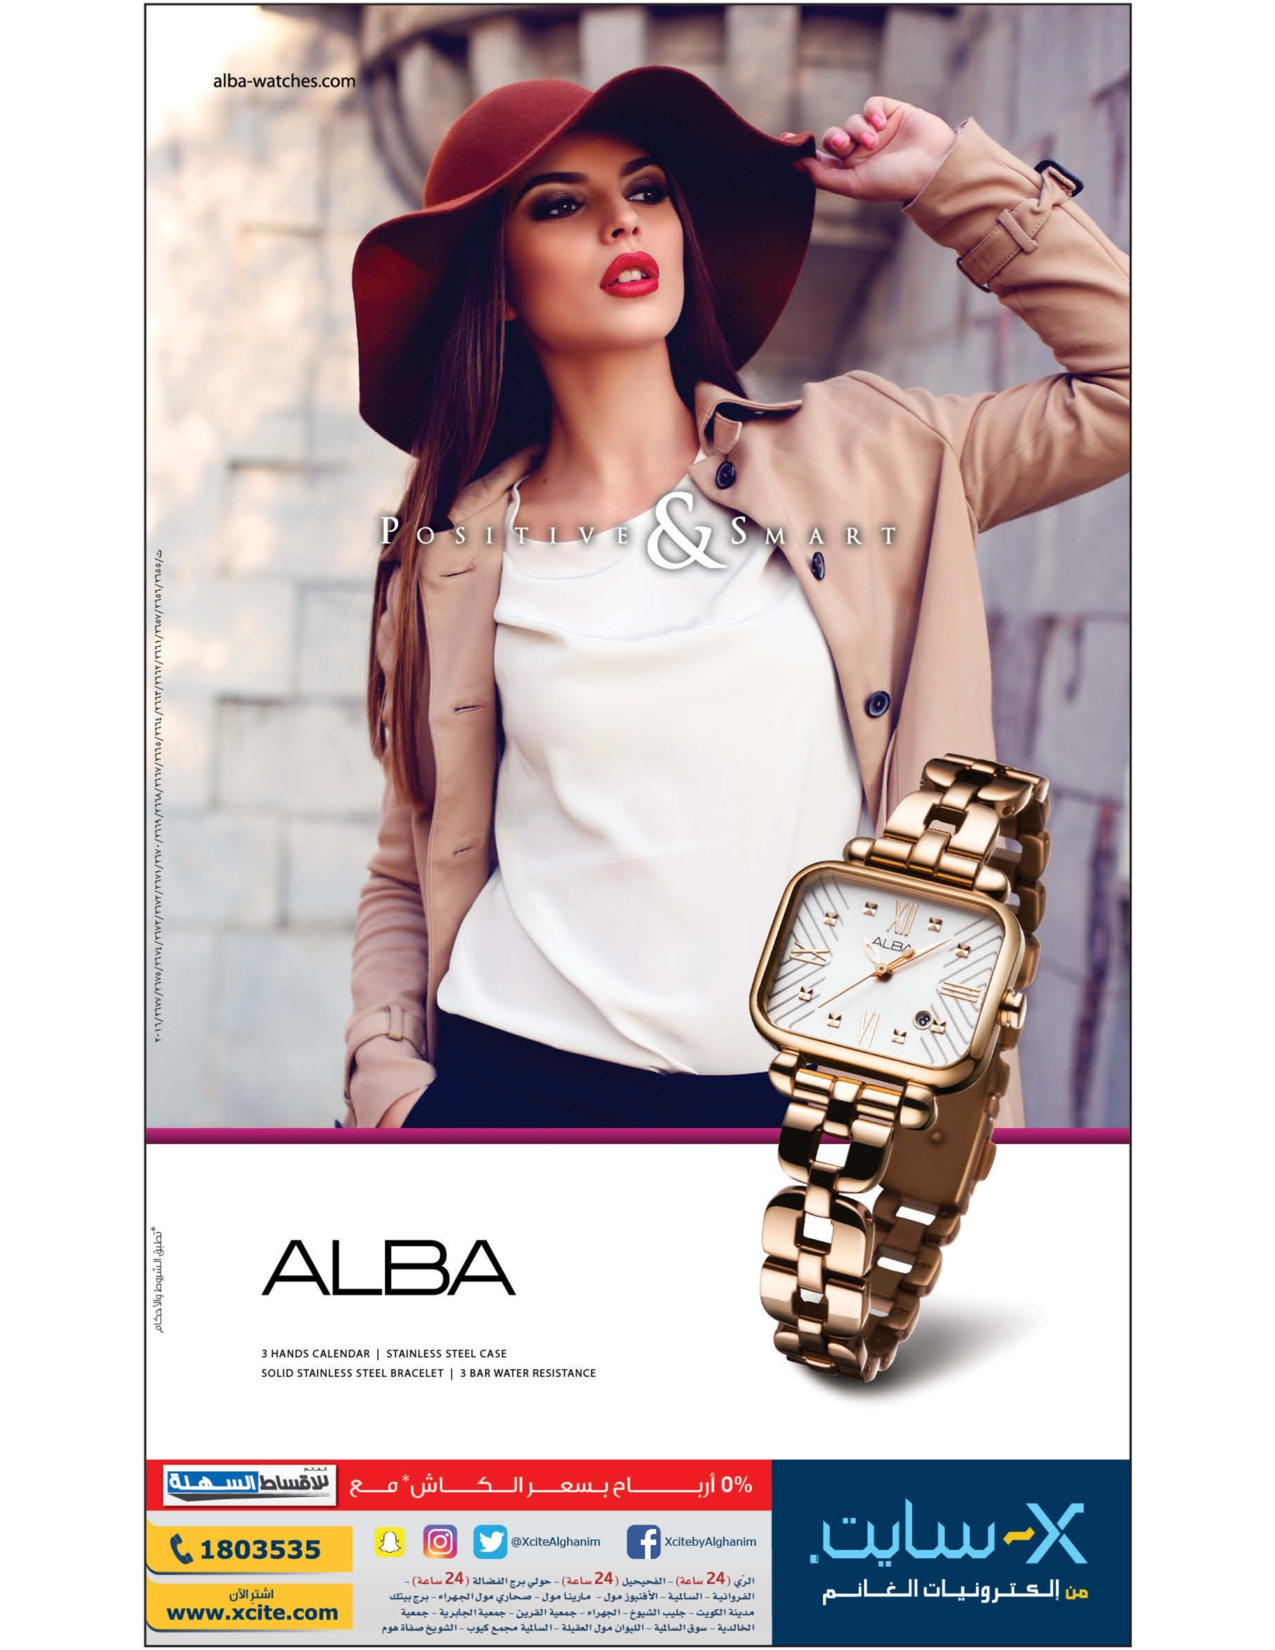 watches-offers-kuwait